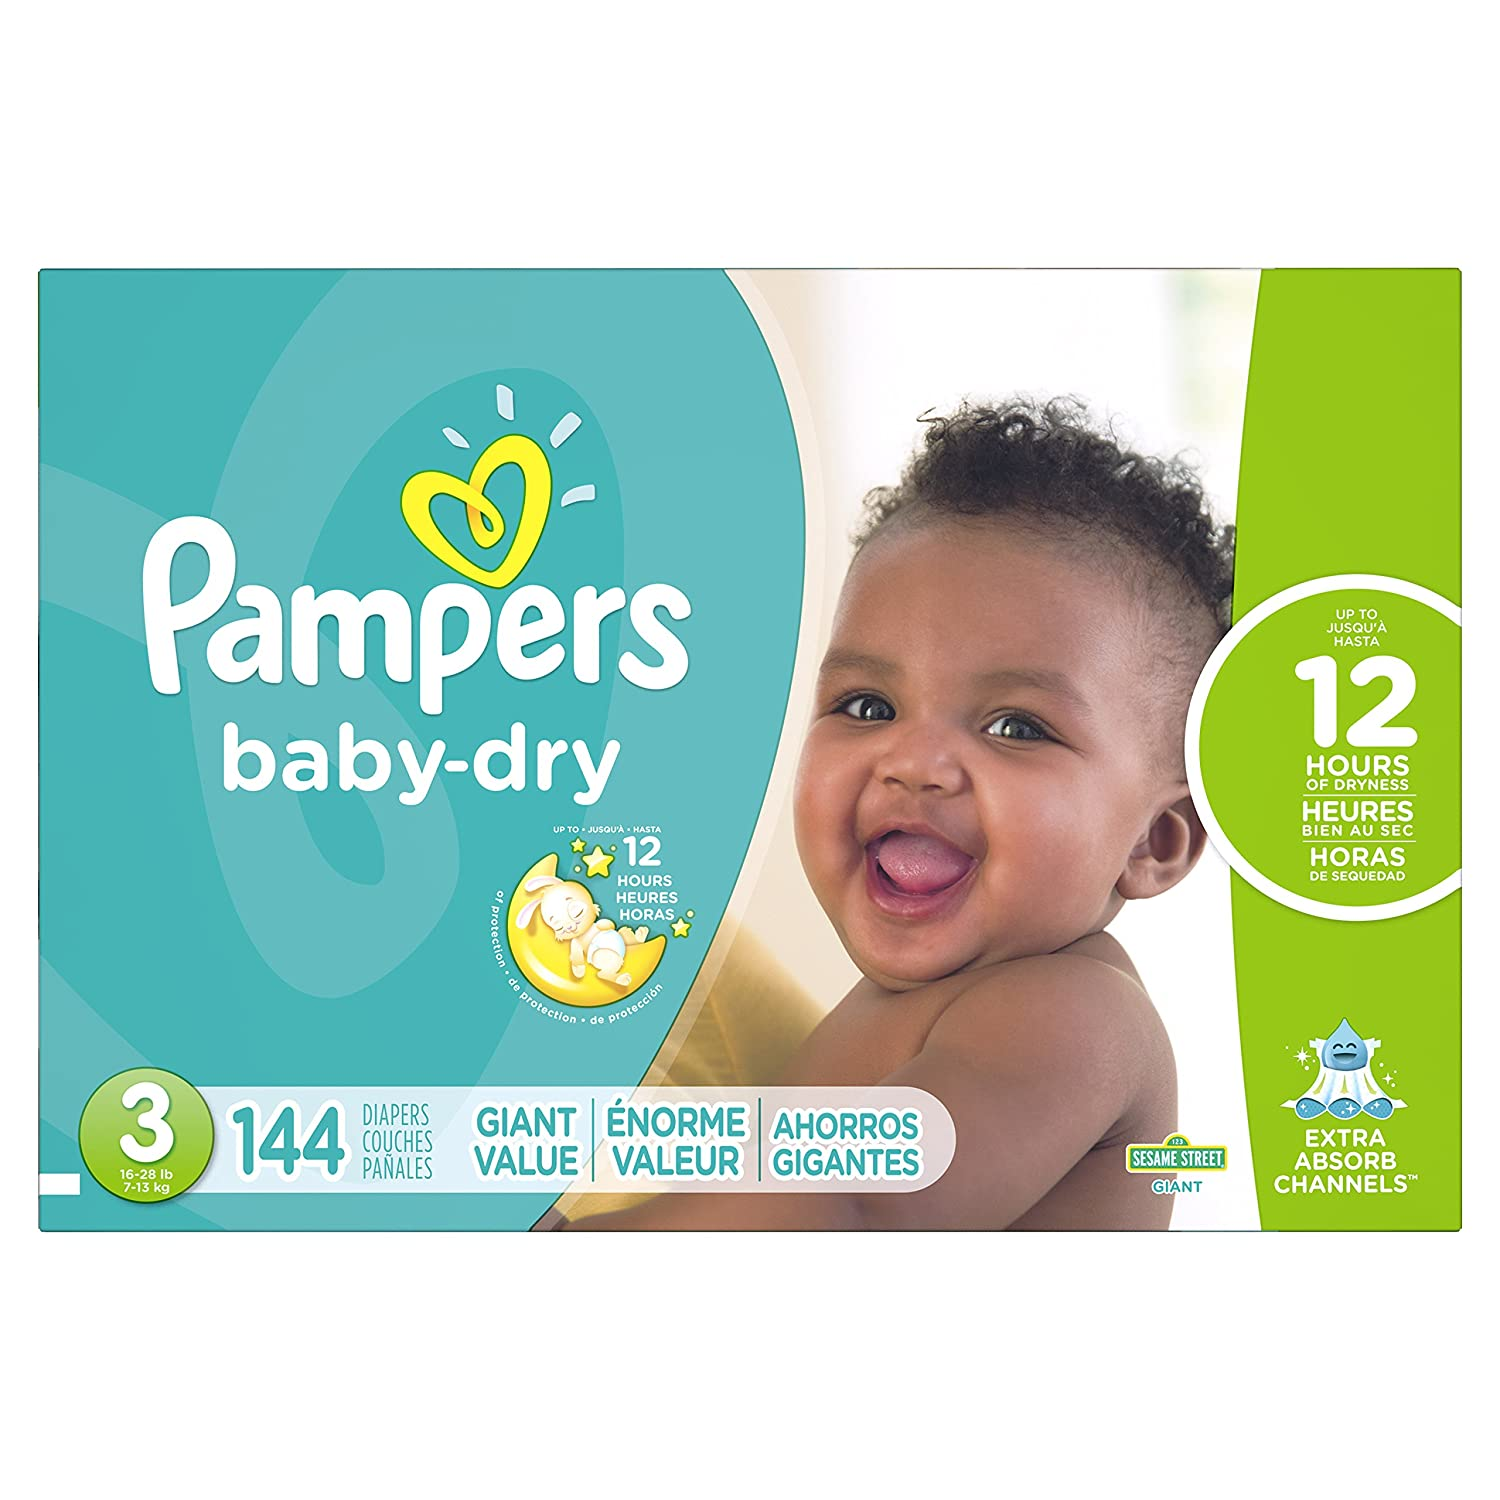 Amazon.com: Pampers Baby-Dry Diapers Size 3 144 Count: Health & Personal Care